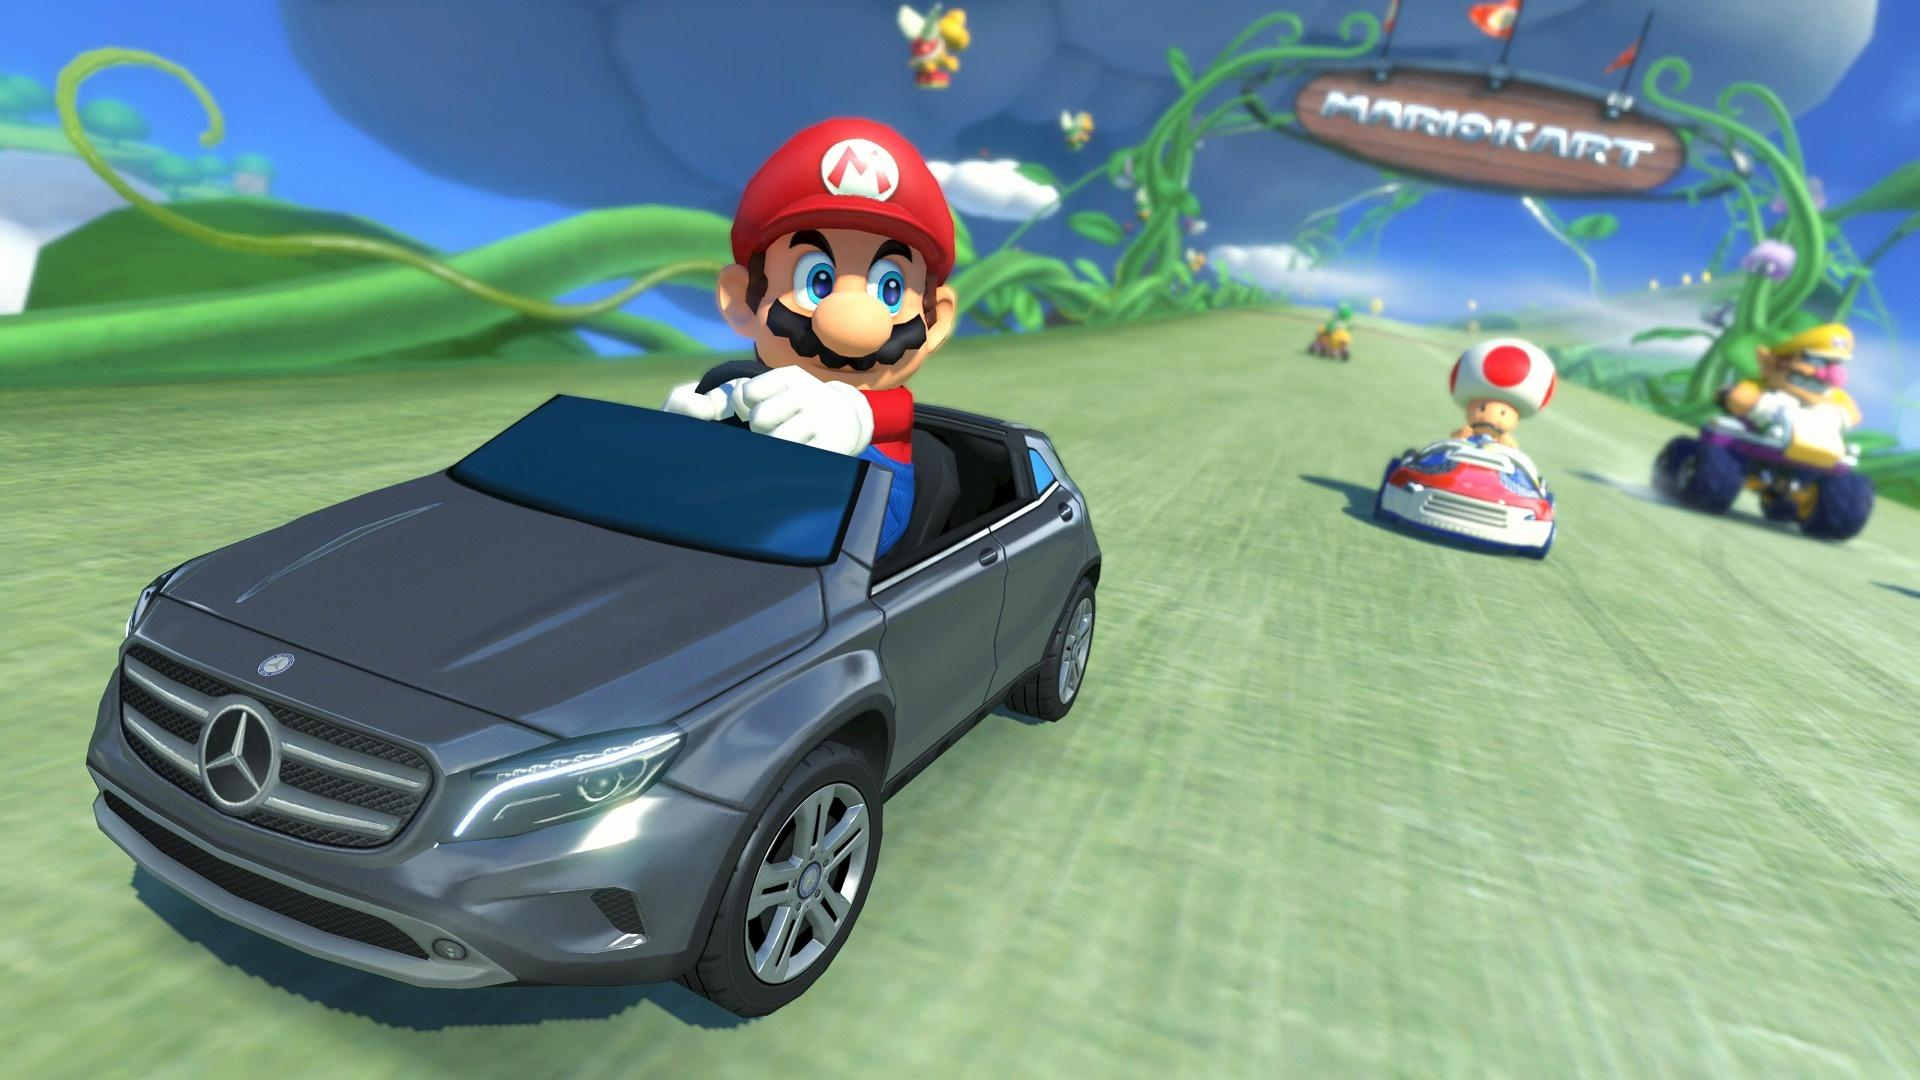 Although the inclusion of real vehicles in Mario Kart may seem incongruous, it shouldn't be too surprising —Nintendo has indicated a desire to expand IP ...